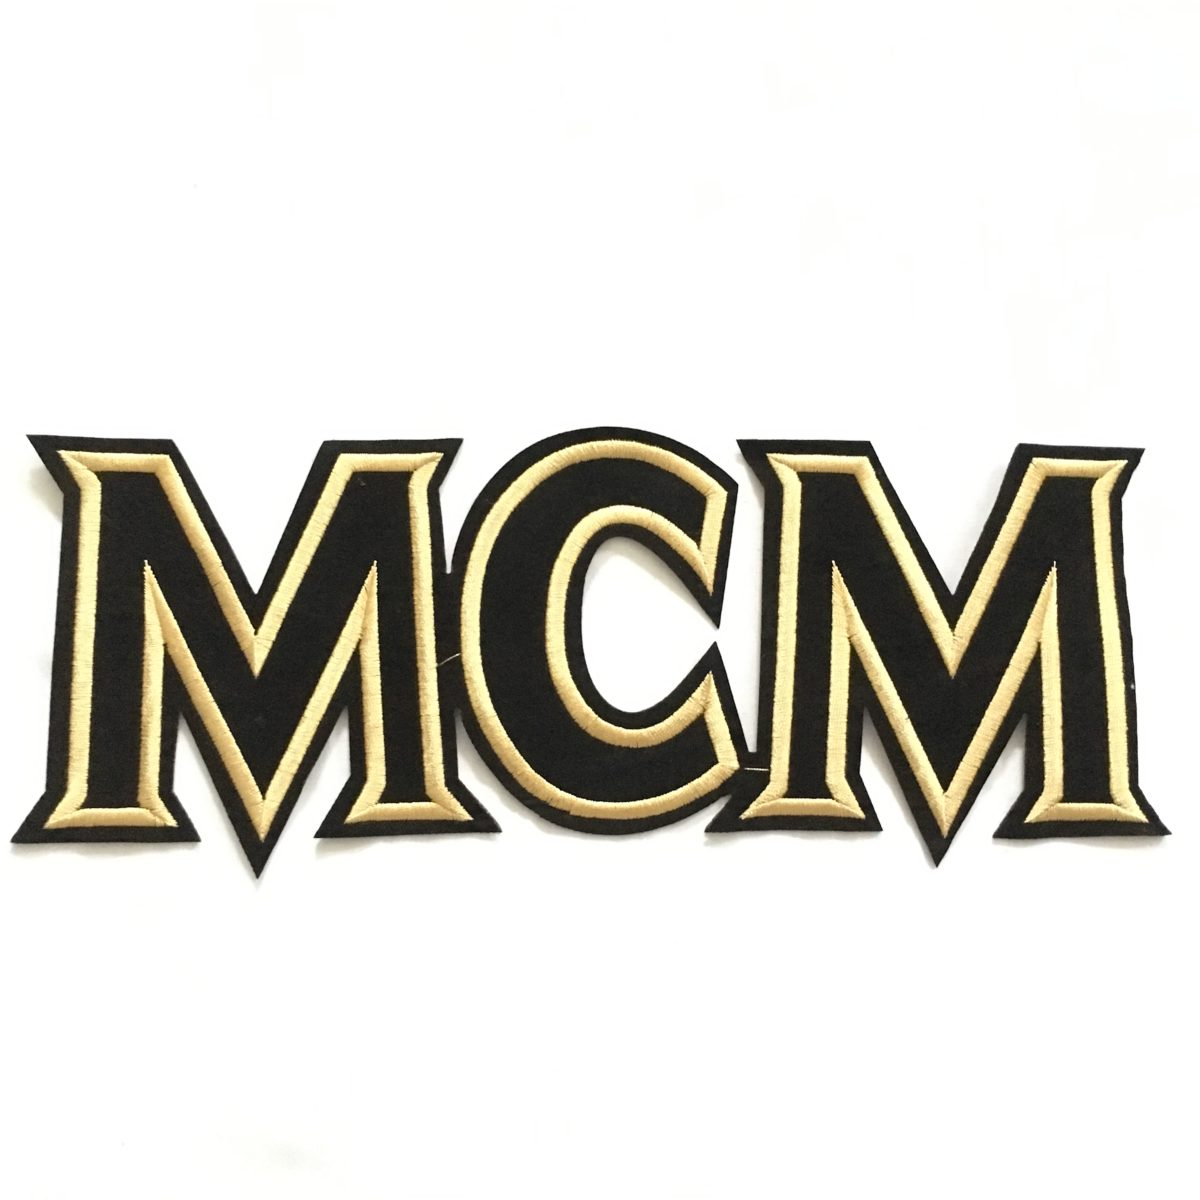 NEW MCM Beautiful Designer Inspired Patch, Iron On Patch 1